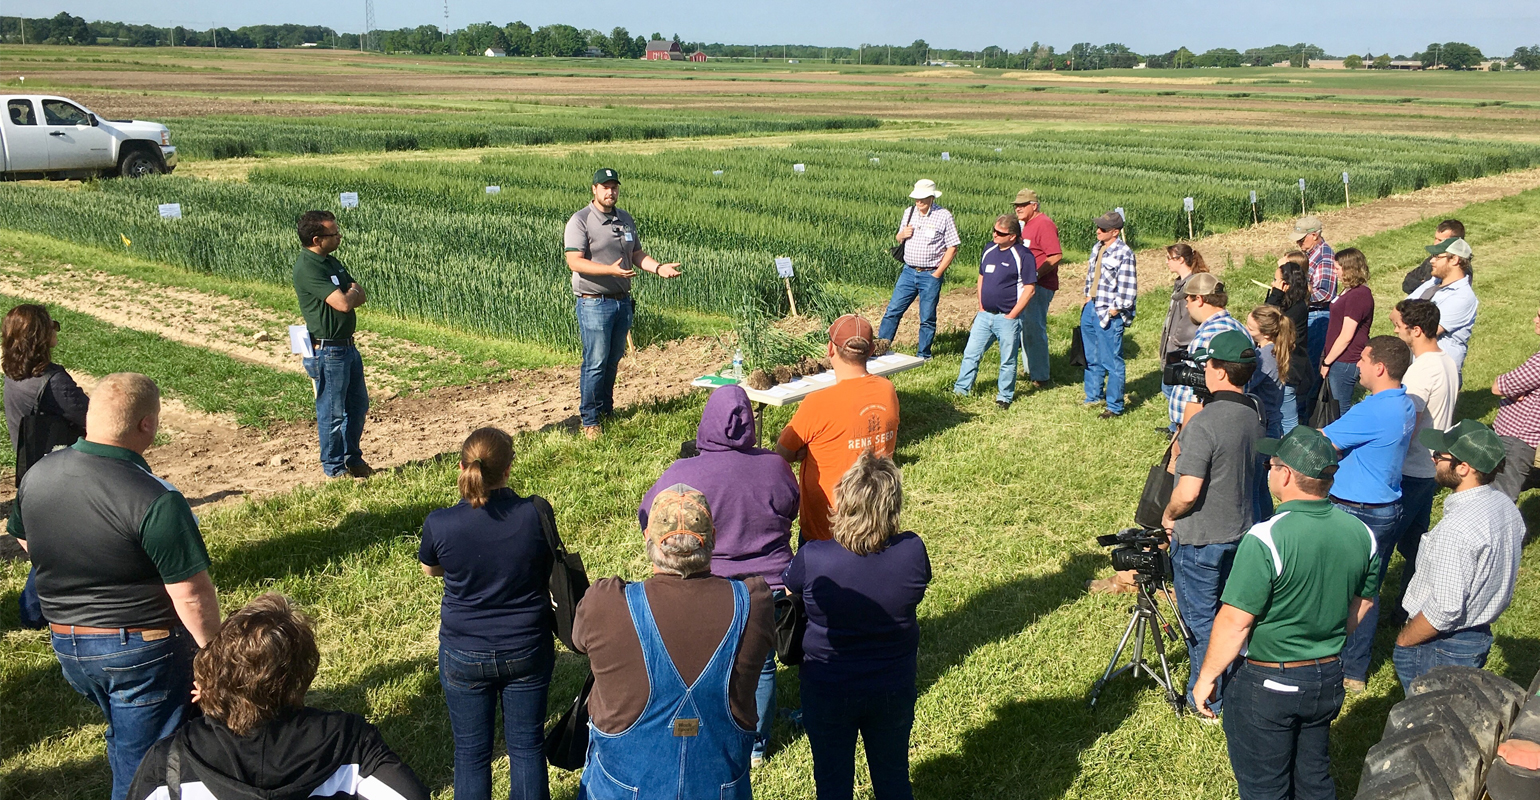 Michigan Wheat Program's summer field day at the beginning of June